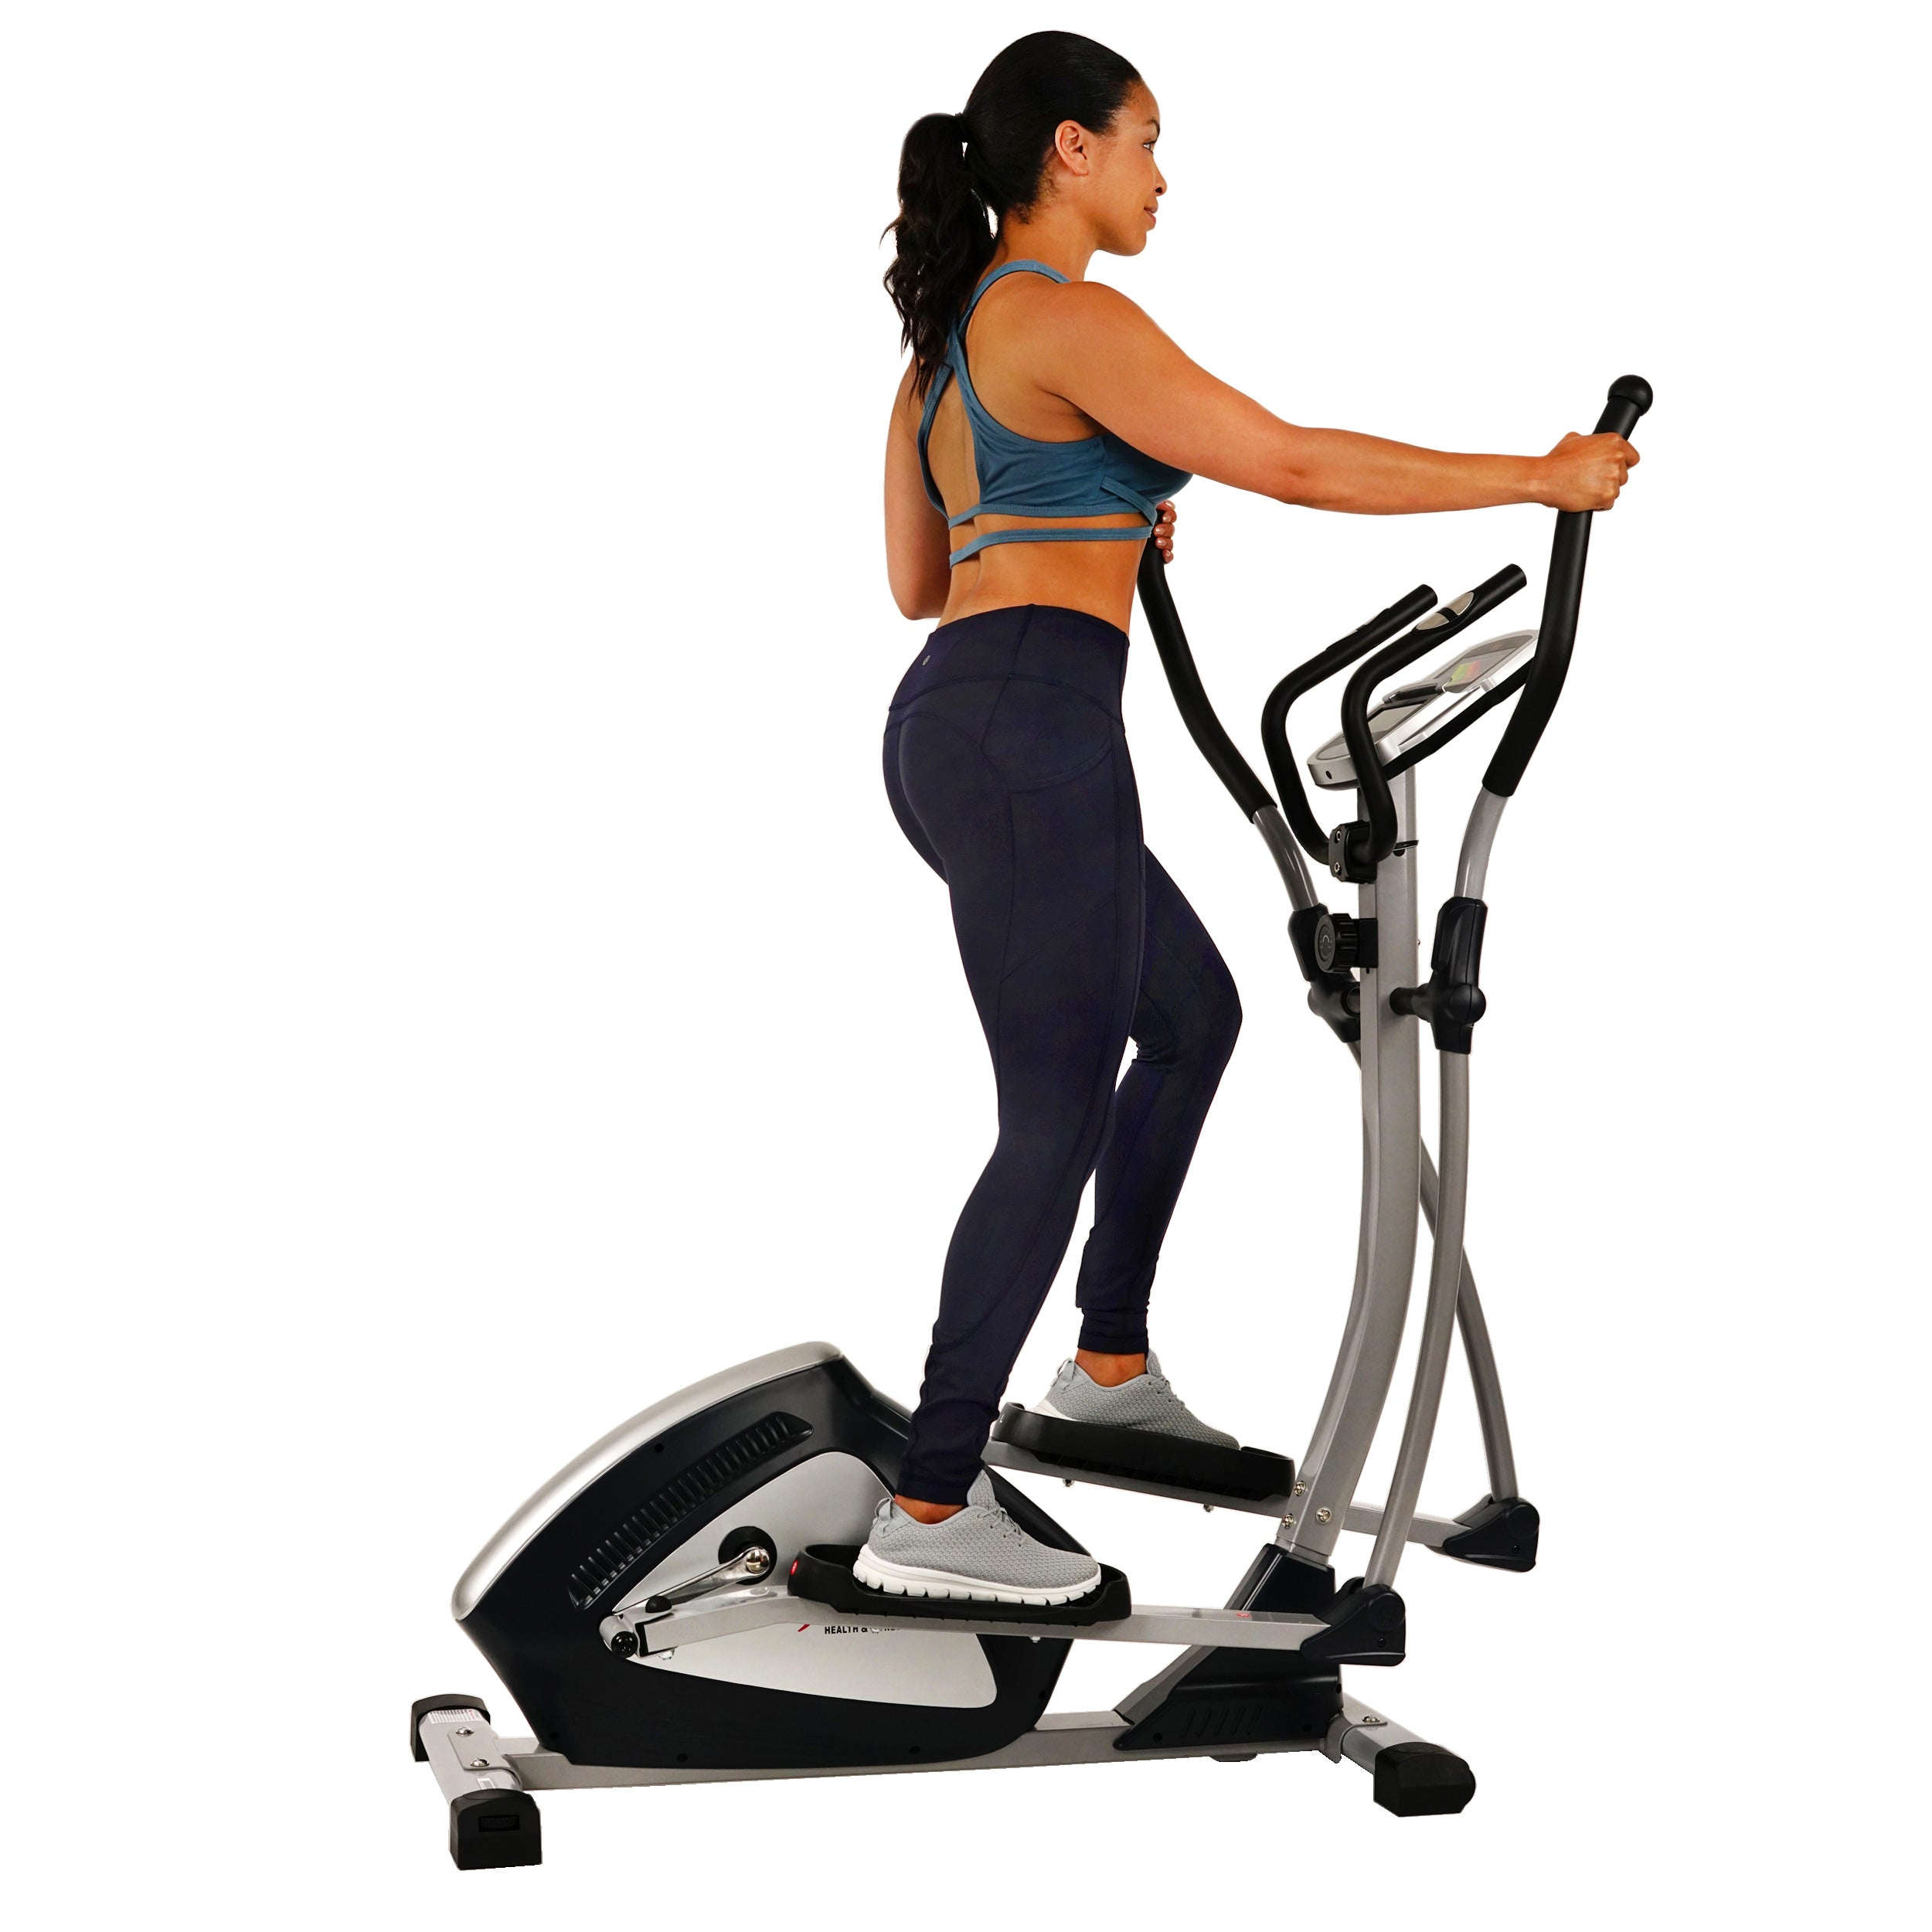 sunny-health-fitness-ellipticals-magnetic-elliptical-machine-tablet-holder-LCD-monitor-heart-rate-monitoring-enderance-zone-SF-E3804-handles